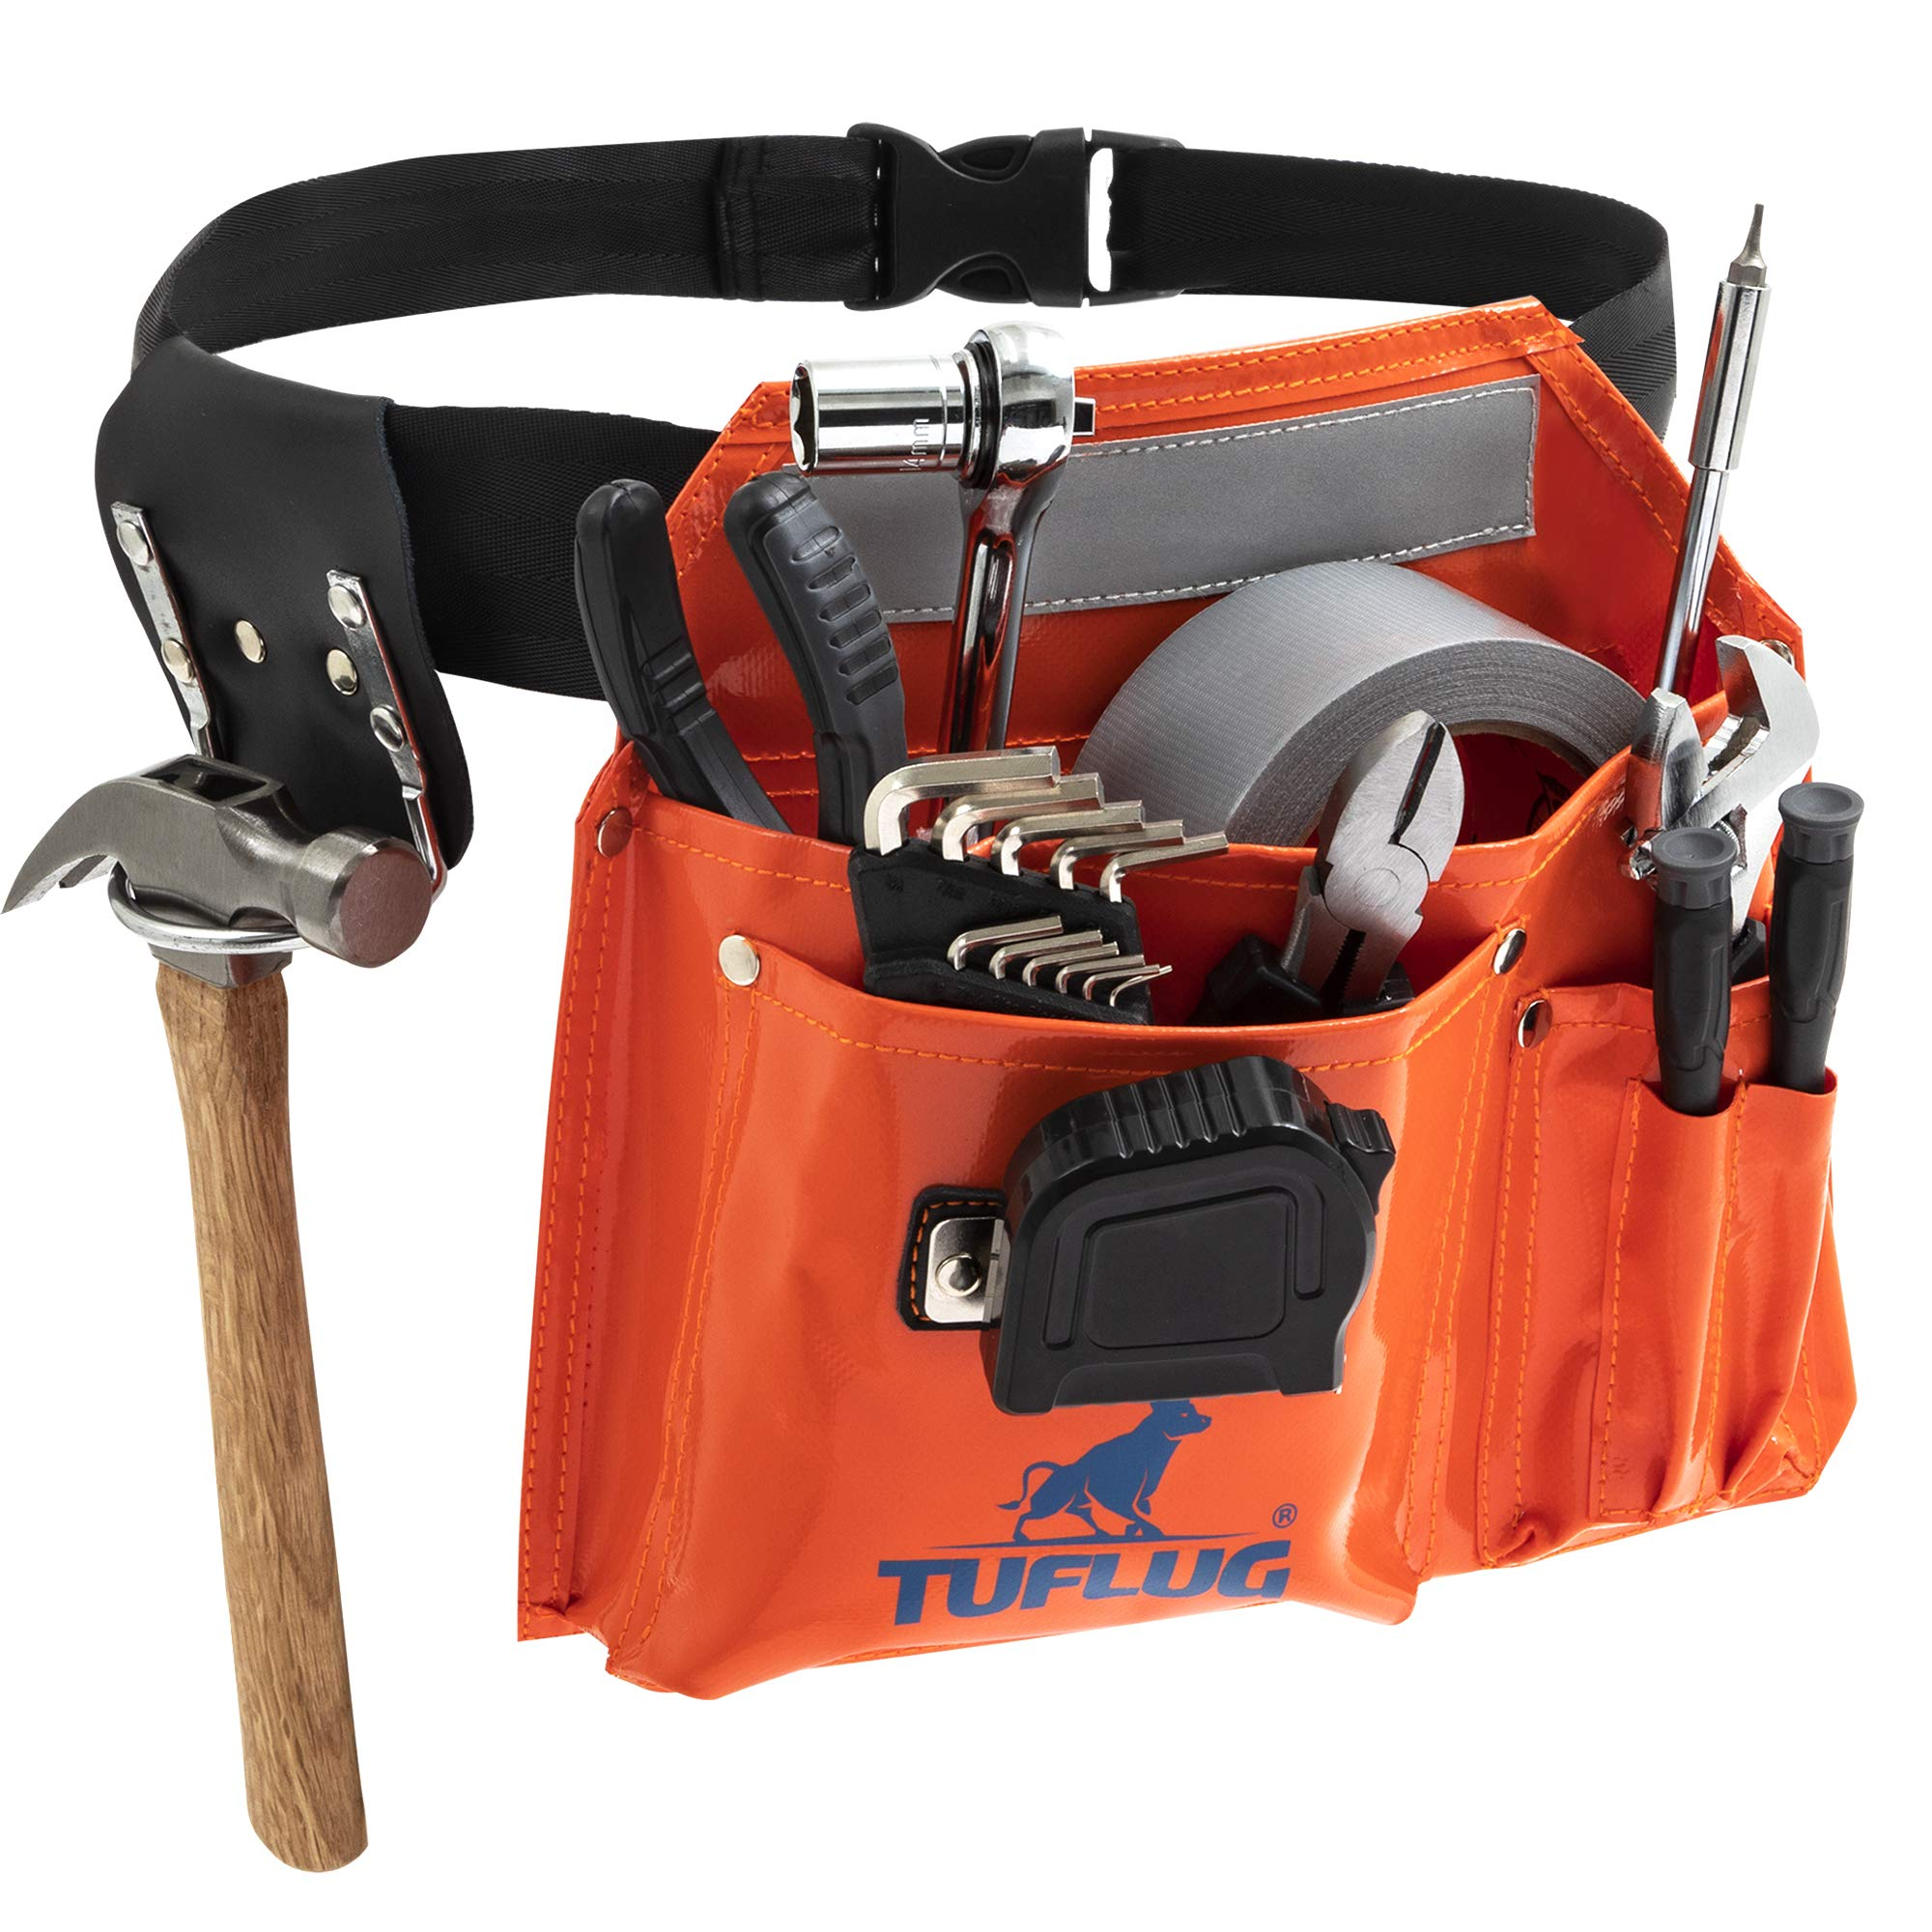 Single Pouch Tool Belt, Industrial-Strength 1000D PVC Vinyl, 46inch Adjustable Waist - Multipurpose Utility Pouches with Pockets for Tools, Hammer, Measuring Tape - Durable, Lightweight Belts by TUFLUG